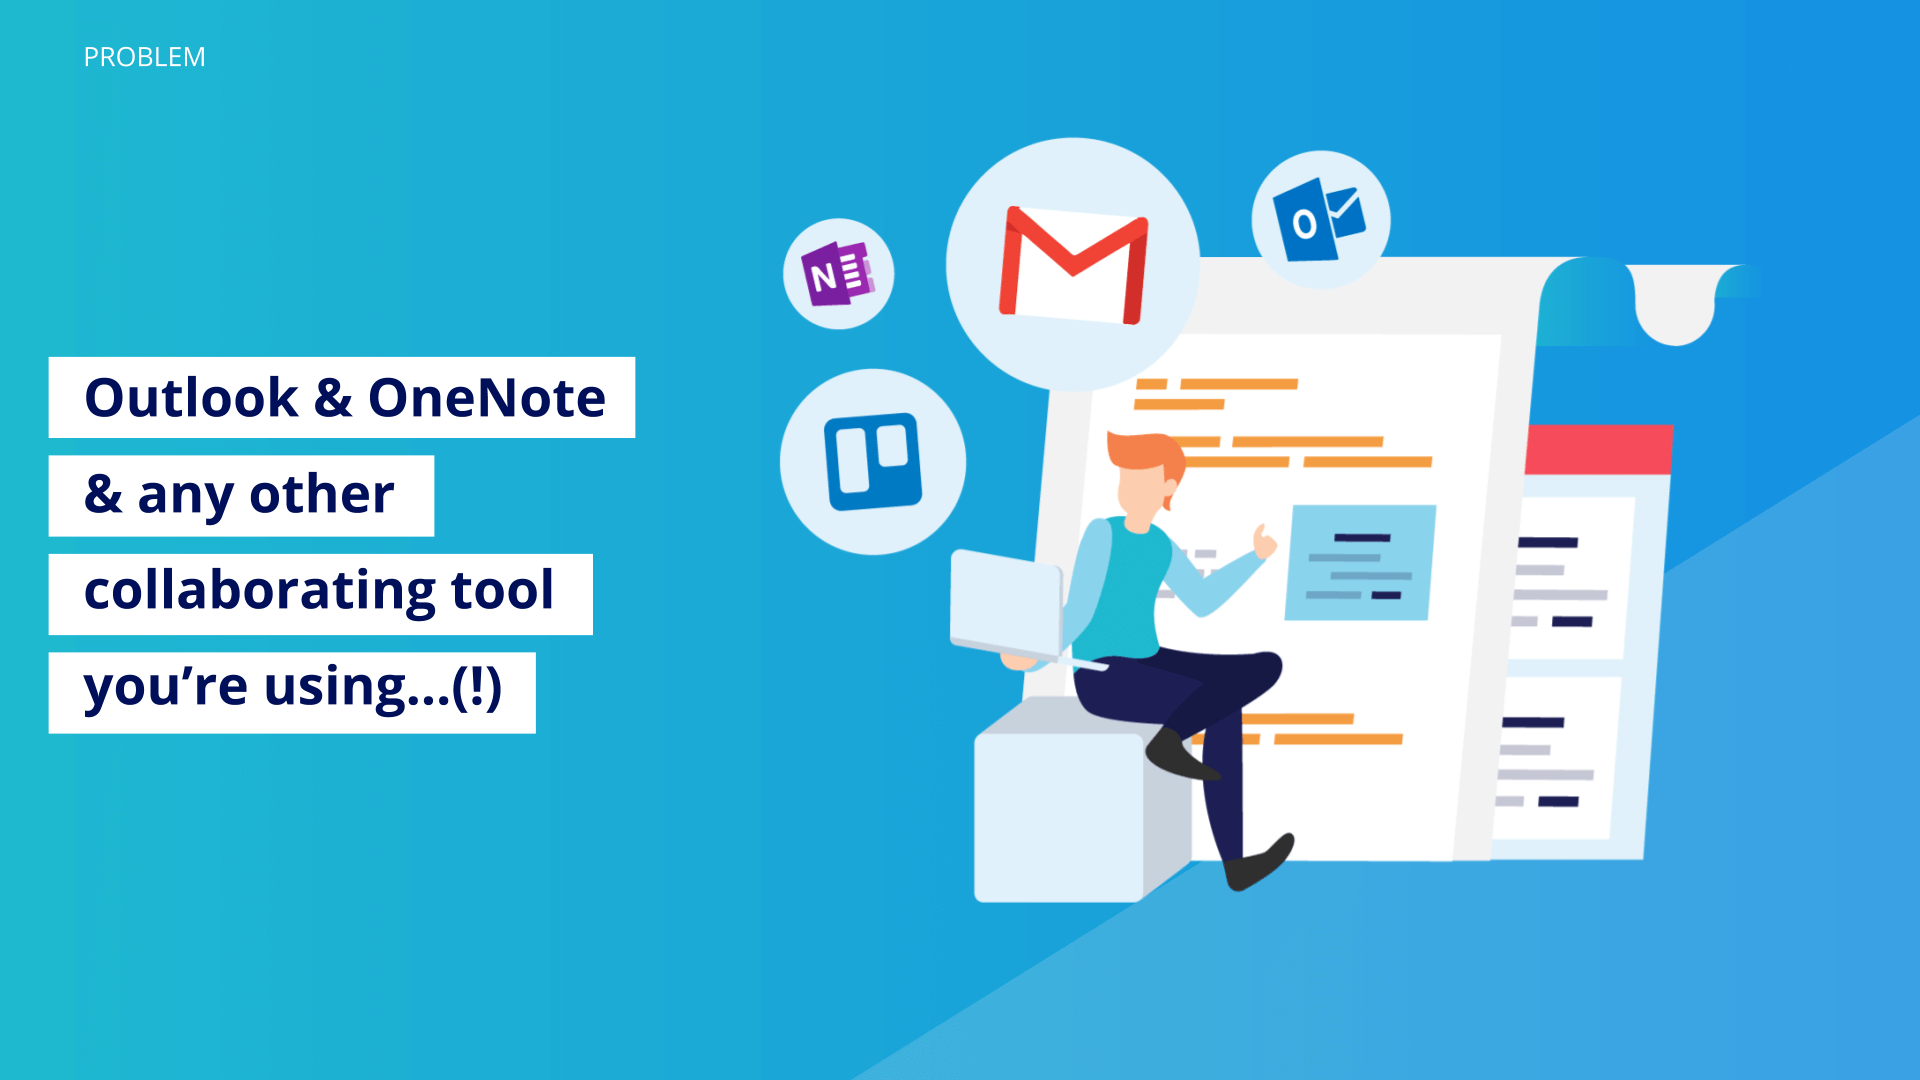 outlook-&-onenote-&-any-other-collaborating-tool-you're-using